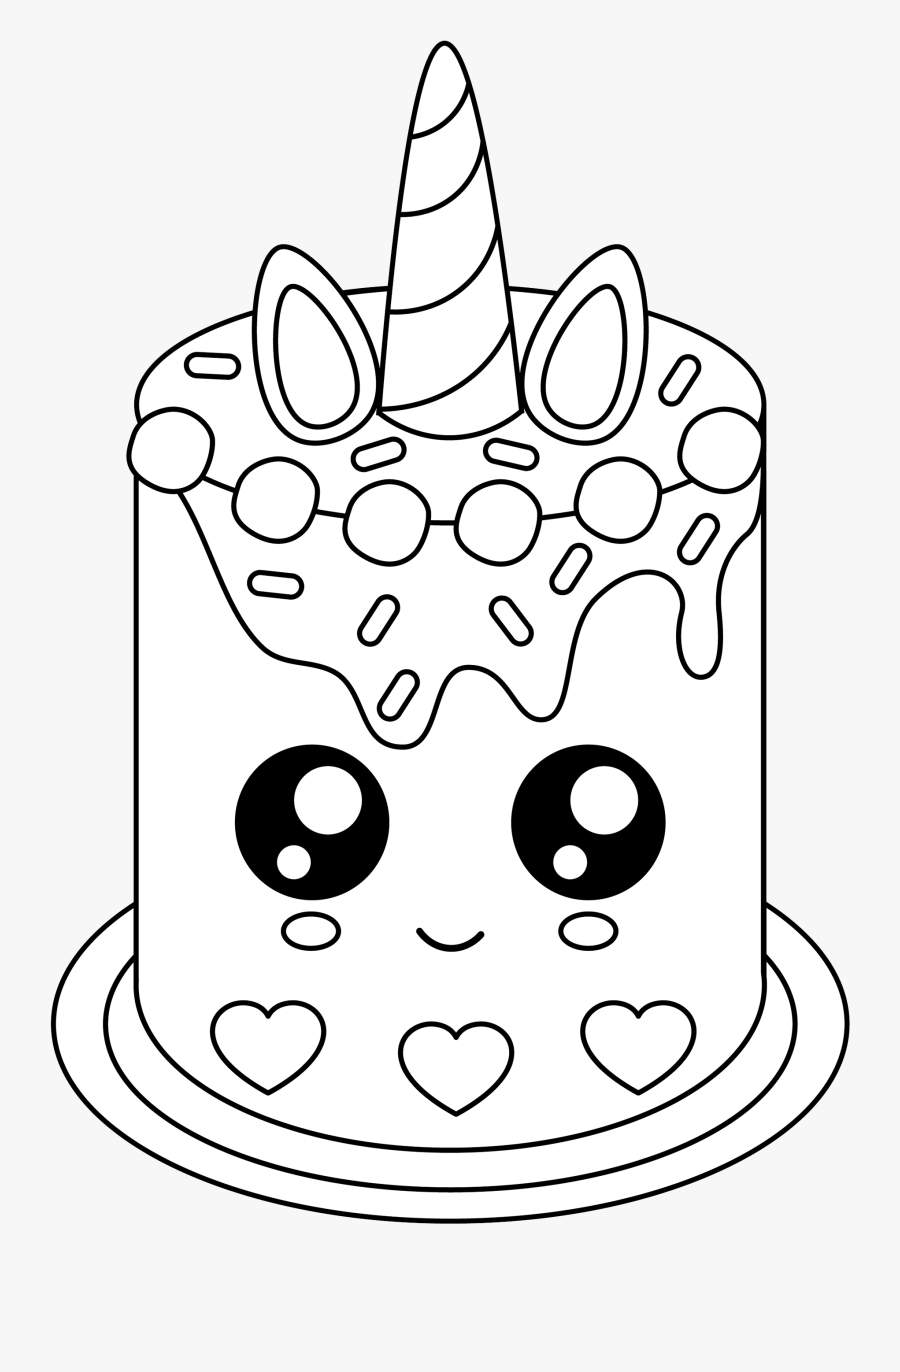 unicorn birthday coloring page clipart 10 free Cliparts ...